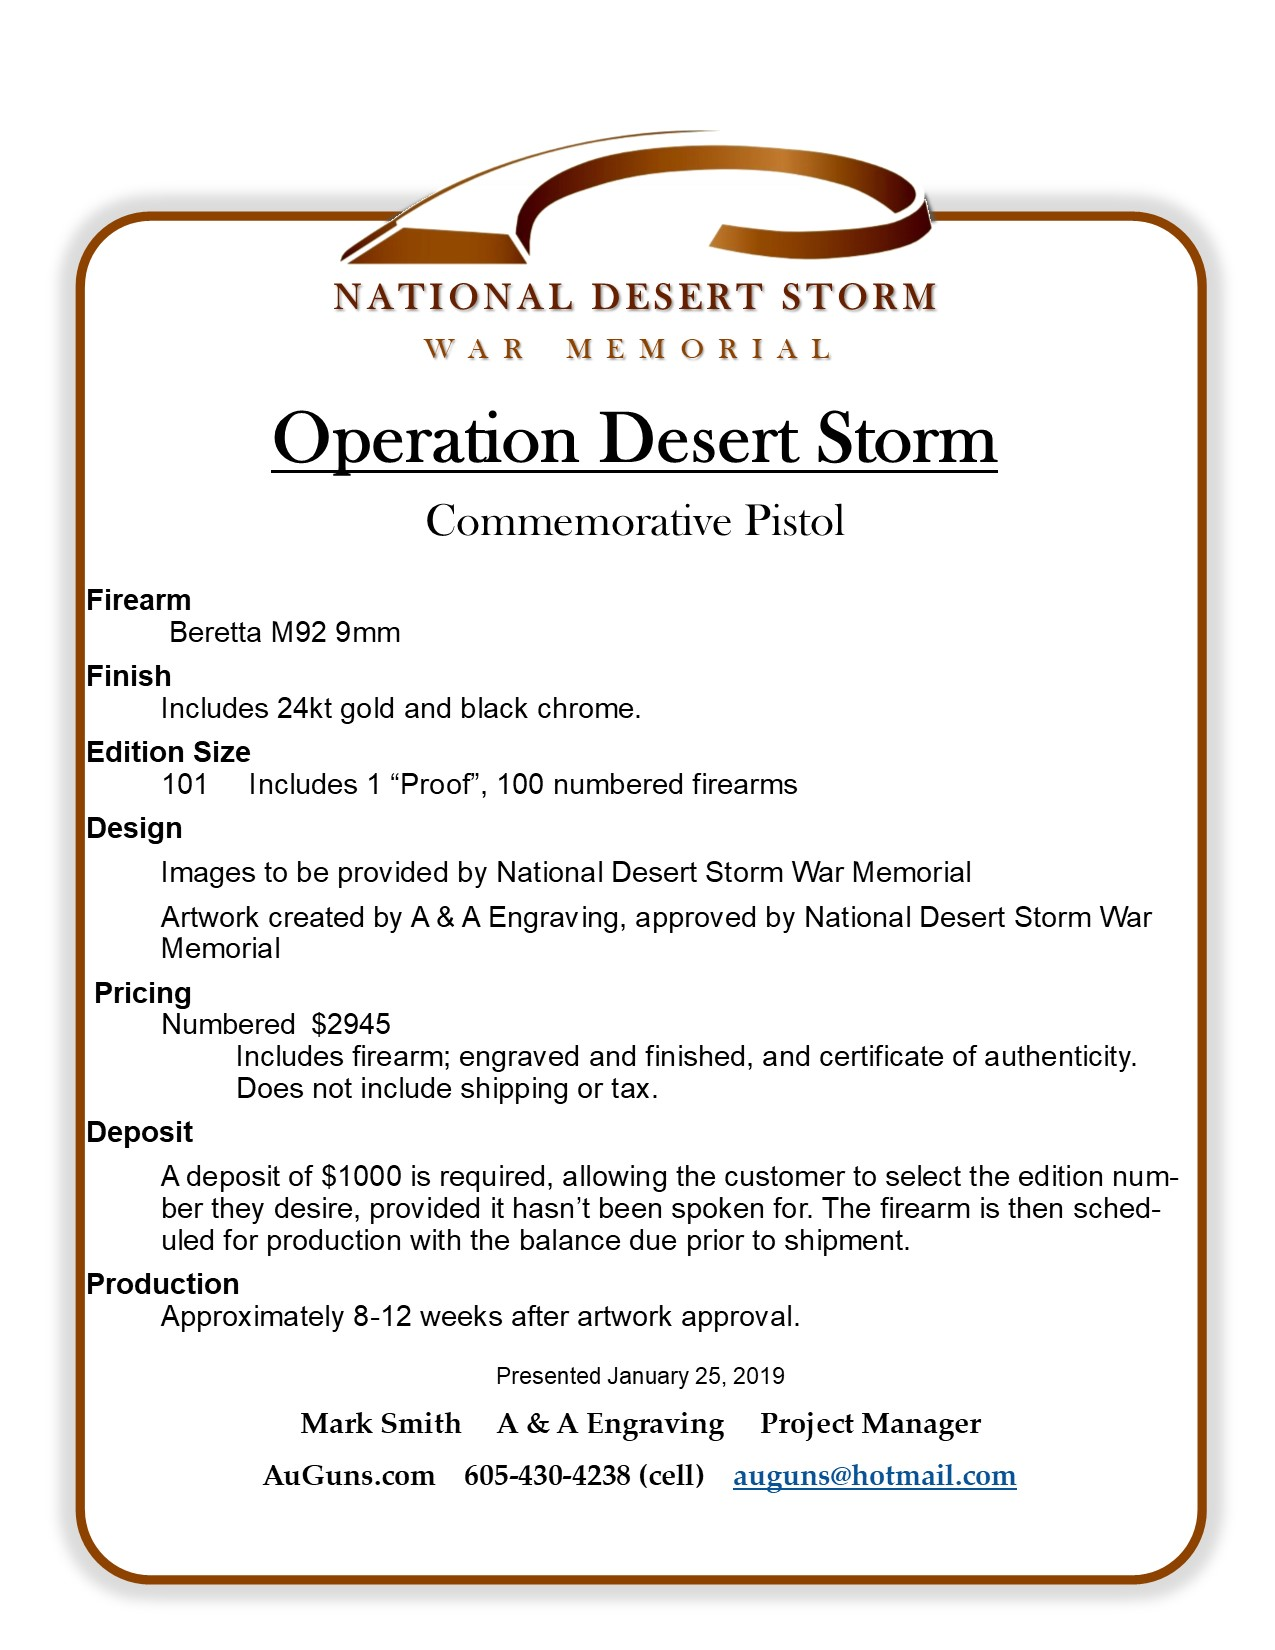 0PERATION DESERT STORM PRICING and INFO (1).jpg